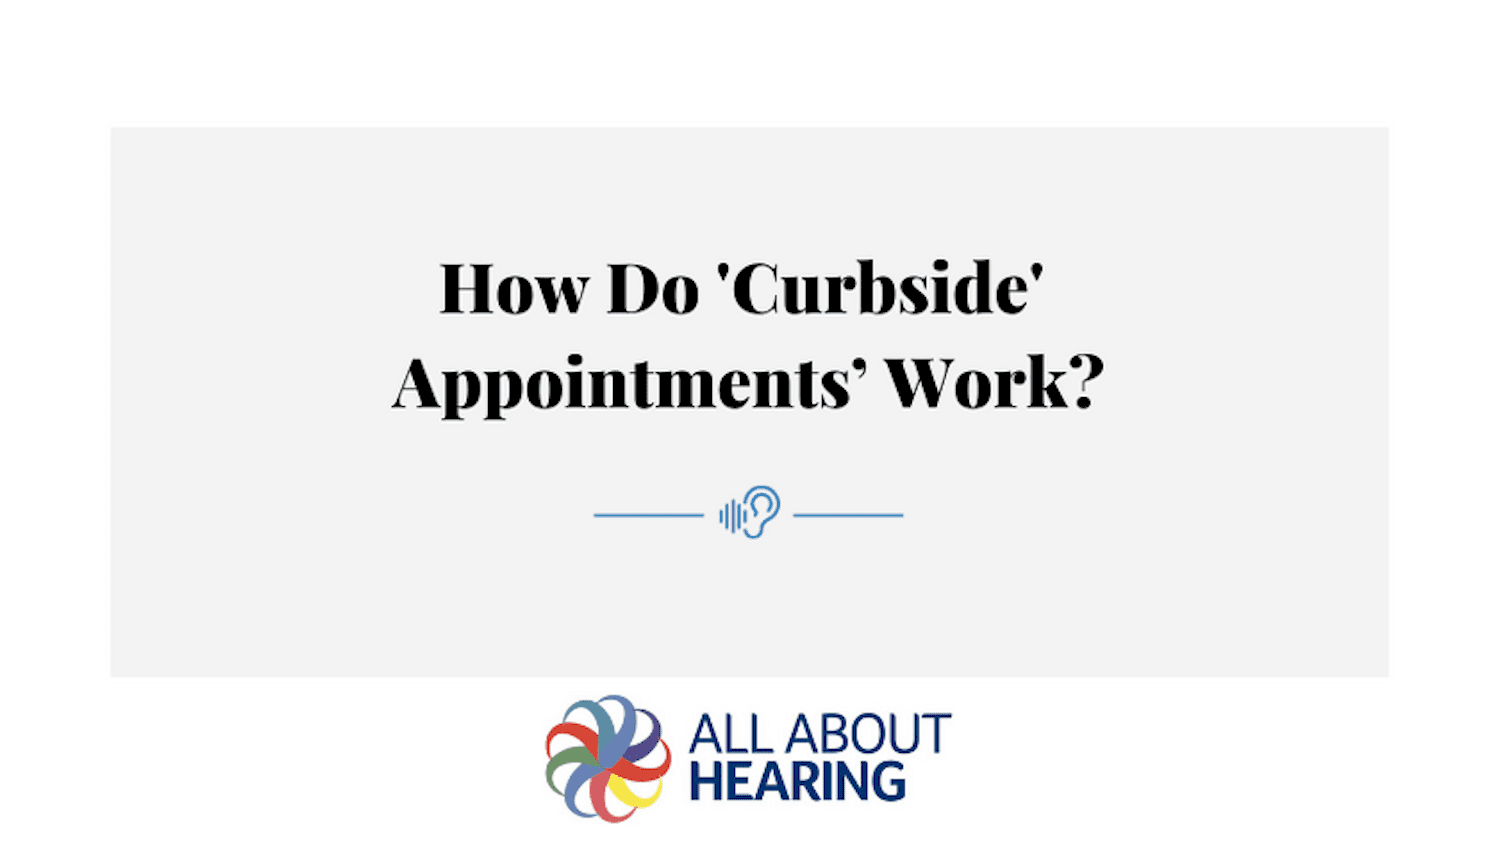 All About Hearing Curbside